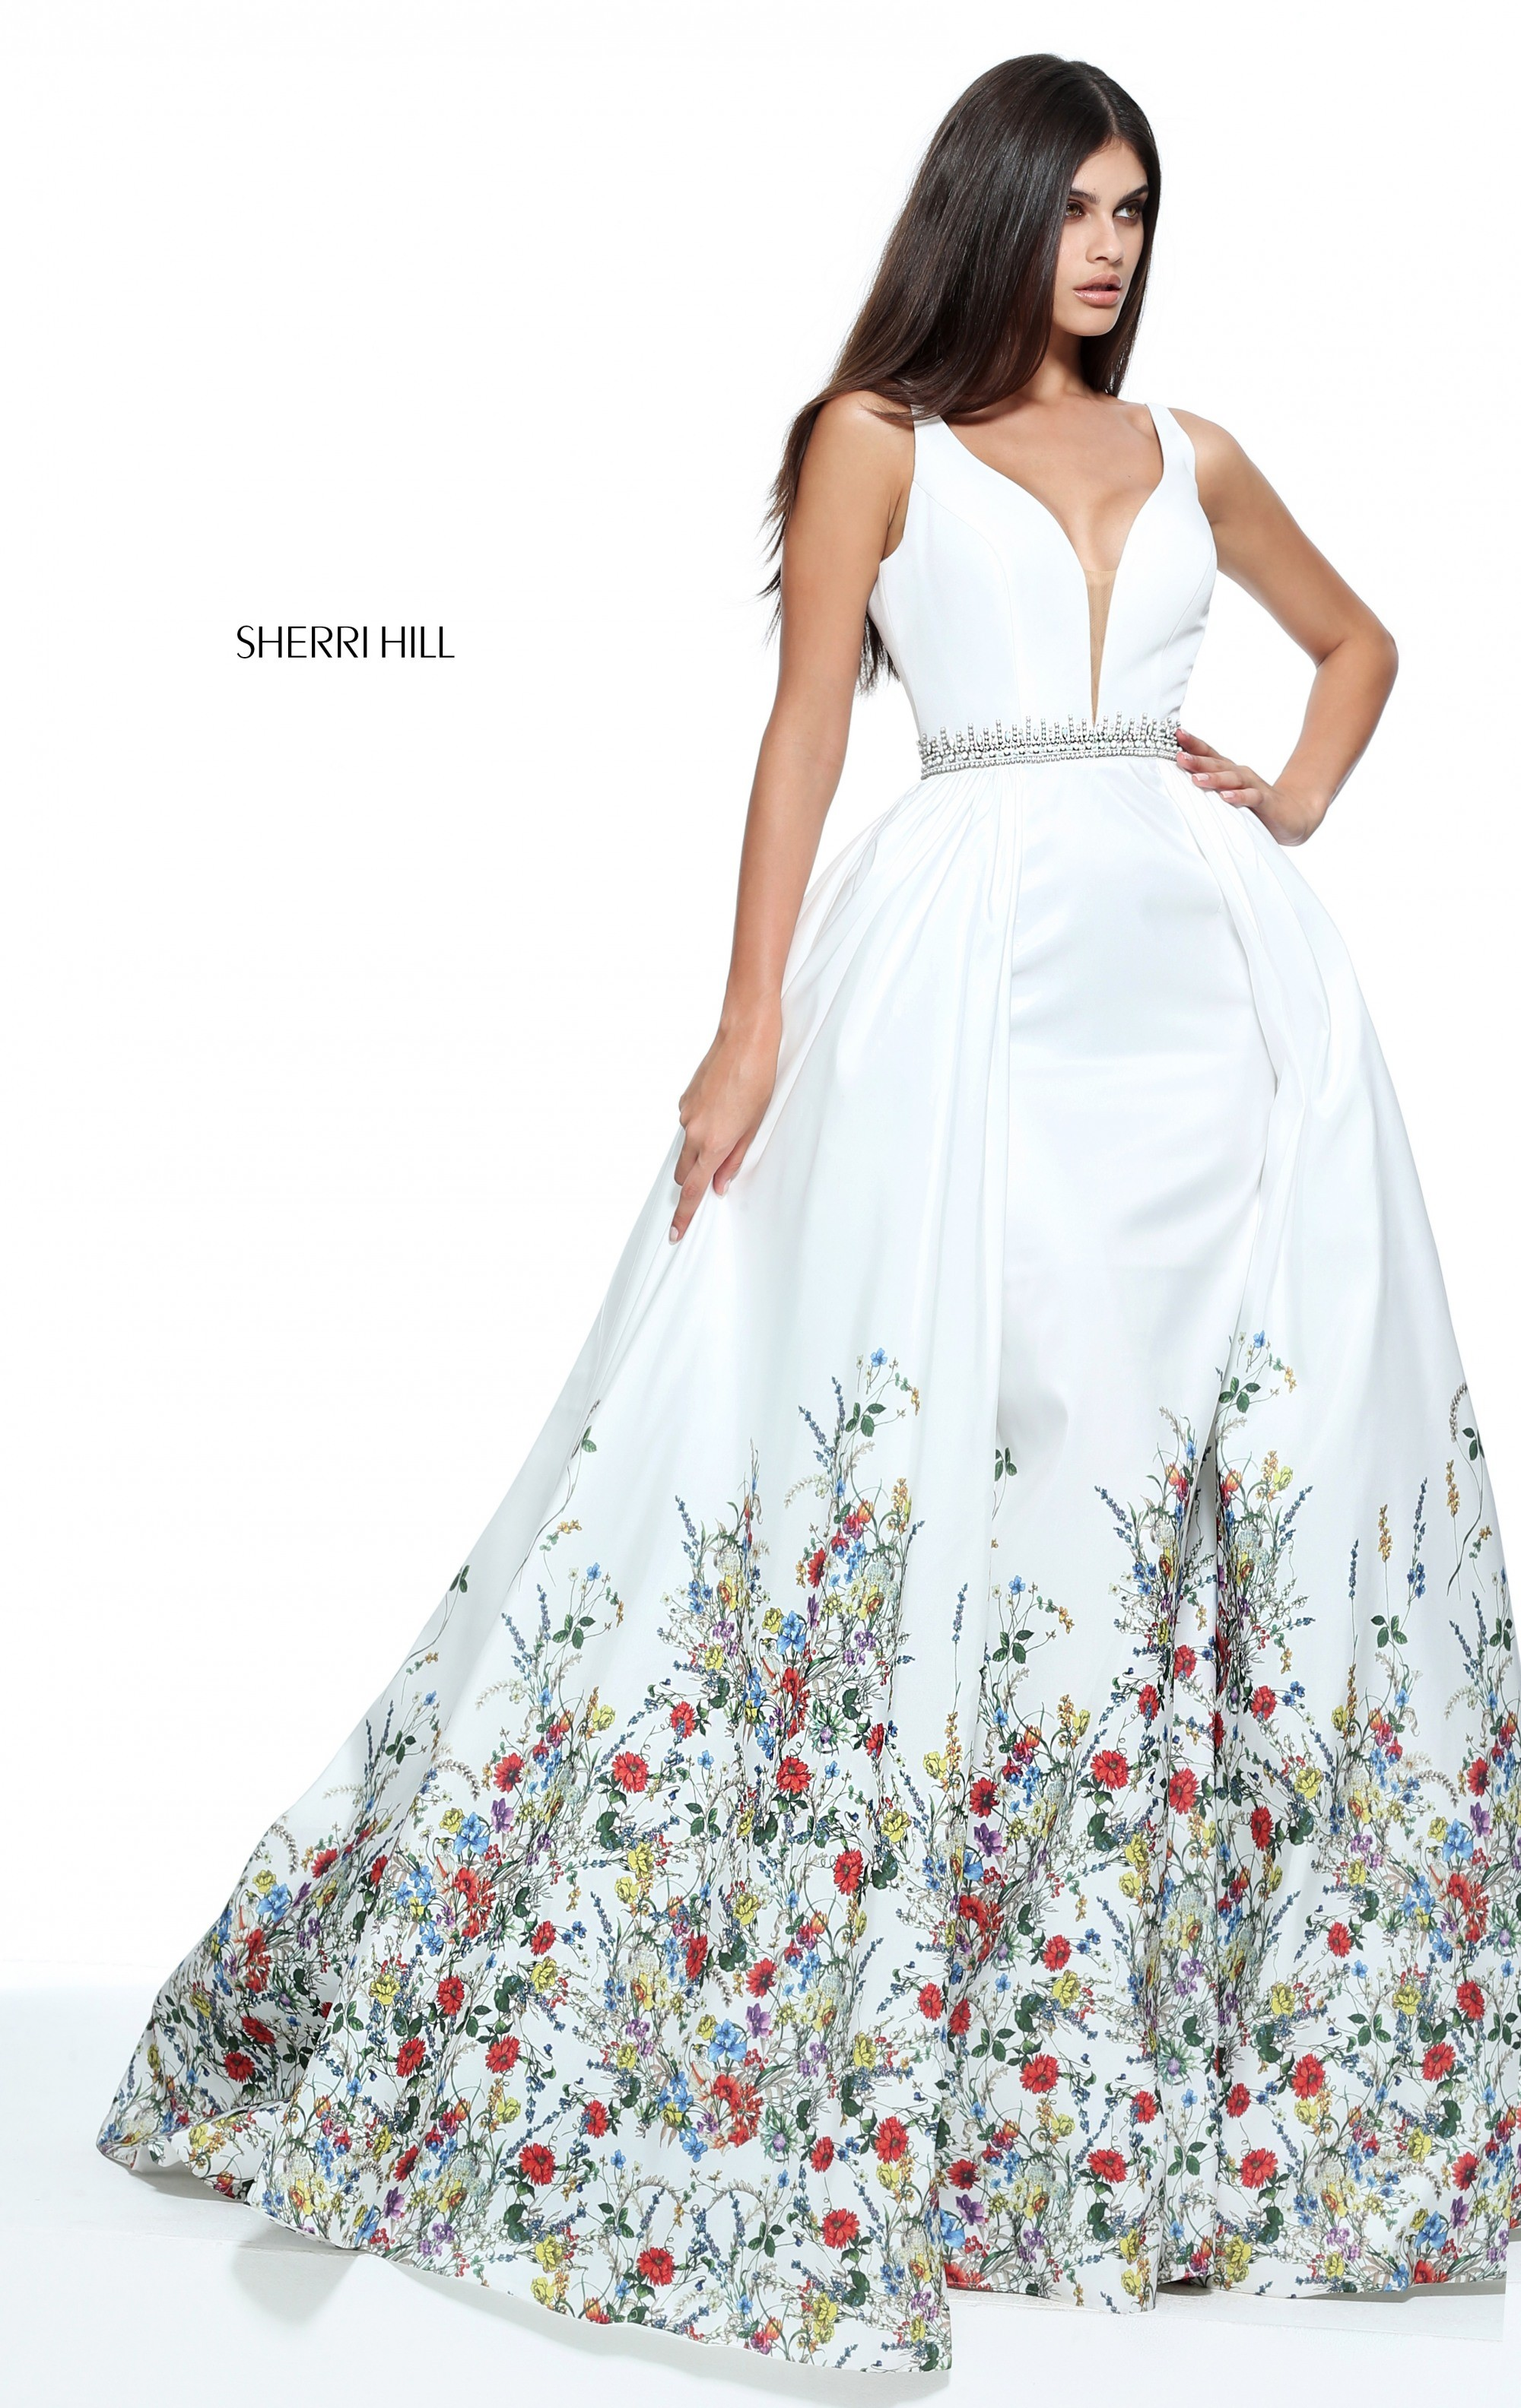 191cc1a1fd26 Sherri Hill Prom Dress Floral – Fashion dresses